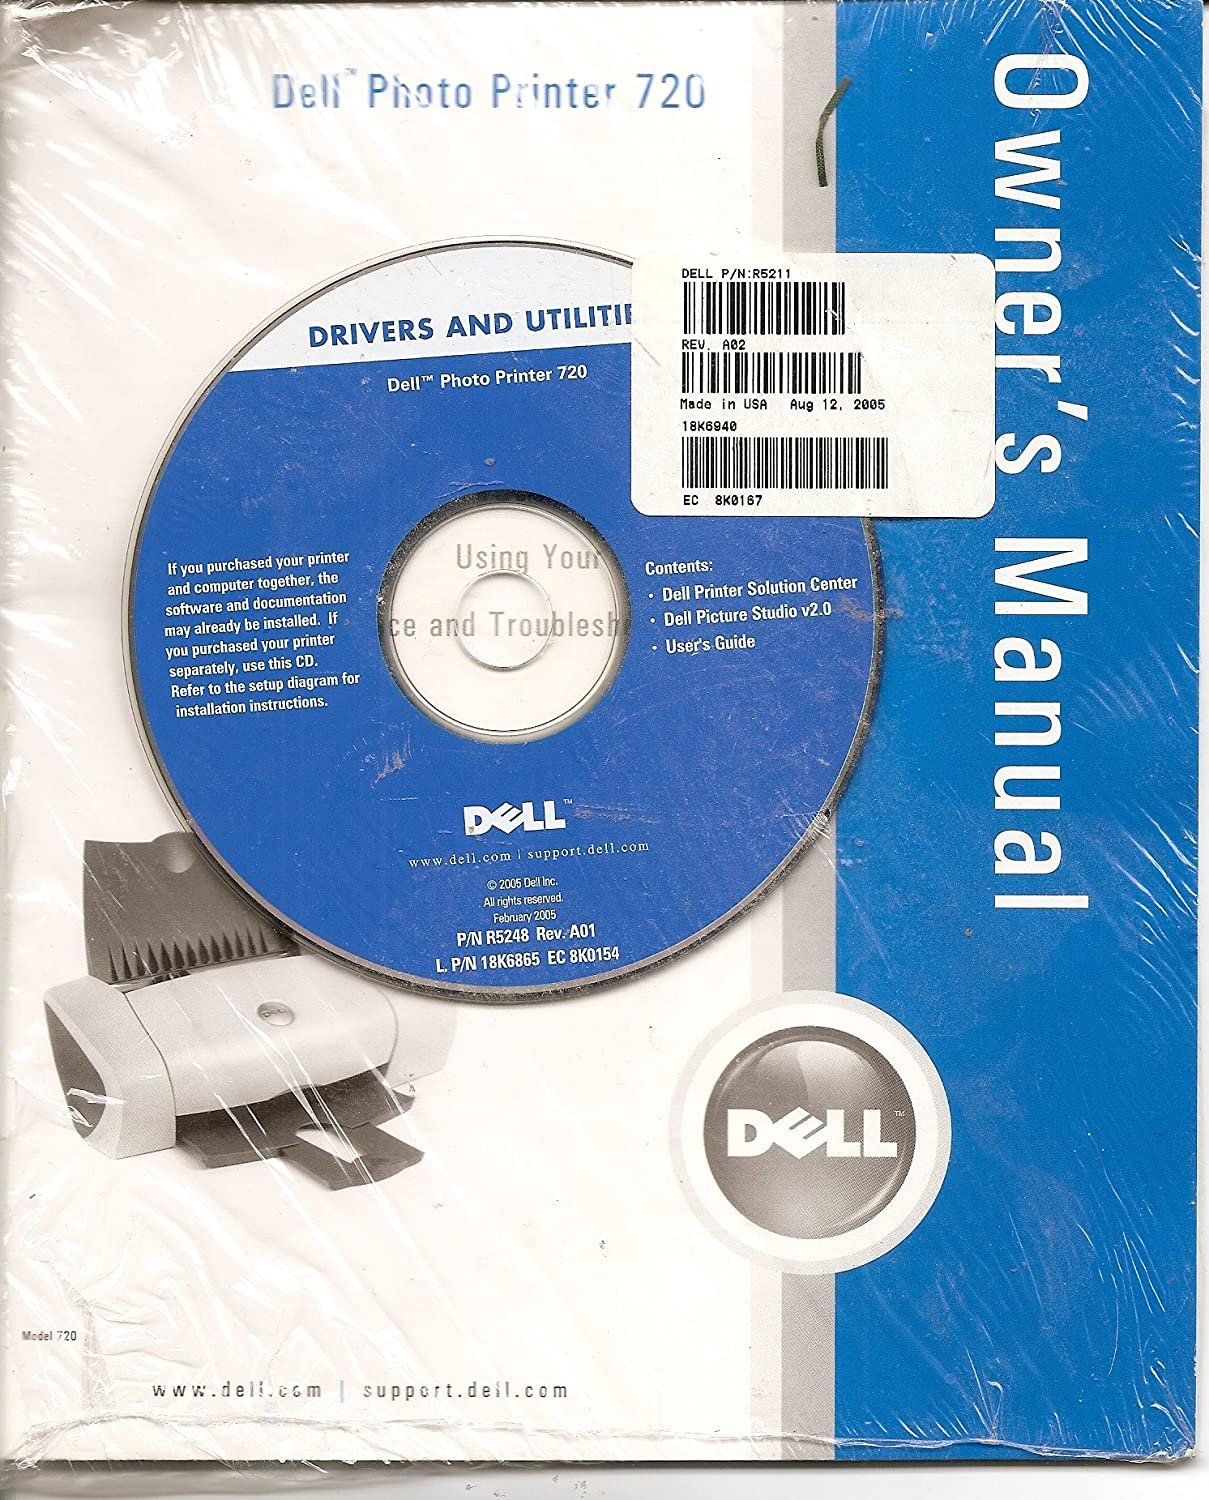 Amazon.com : DELL Photo Printer 720 Owner's Manual w/Drivers and Utilities  CD-ROM : Other Products : Everything Else